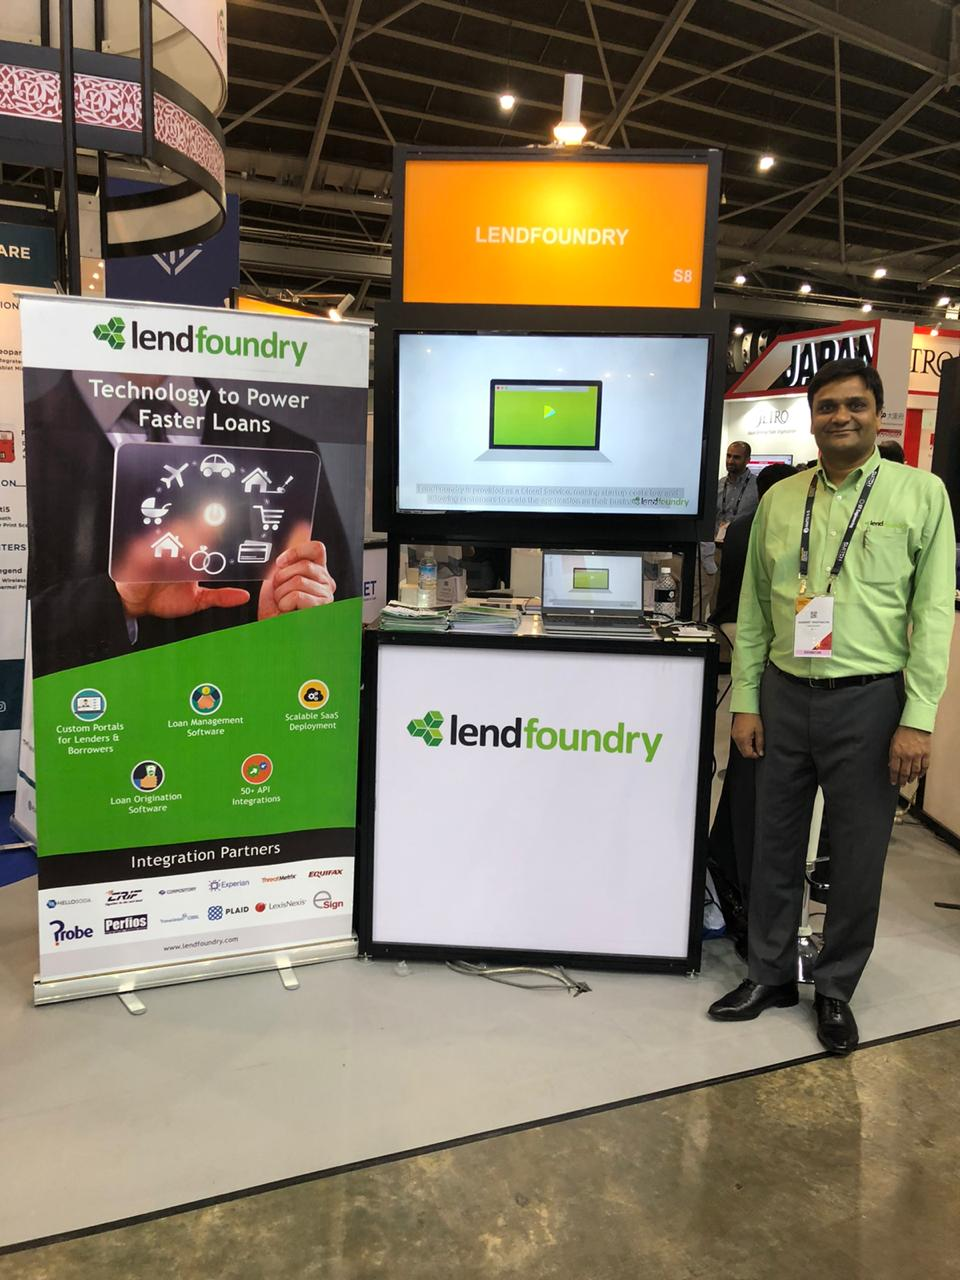 Photo courtesy: LendFoundry